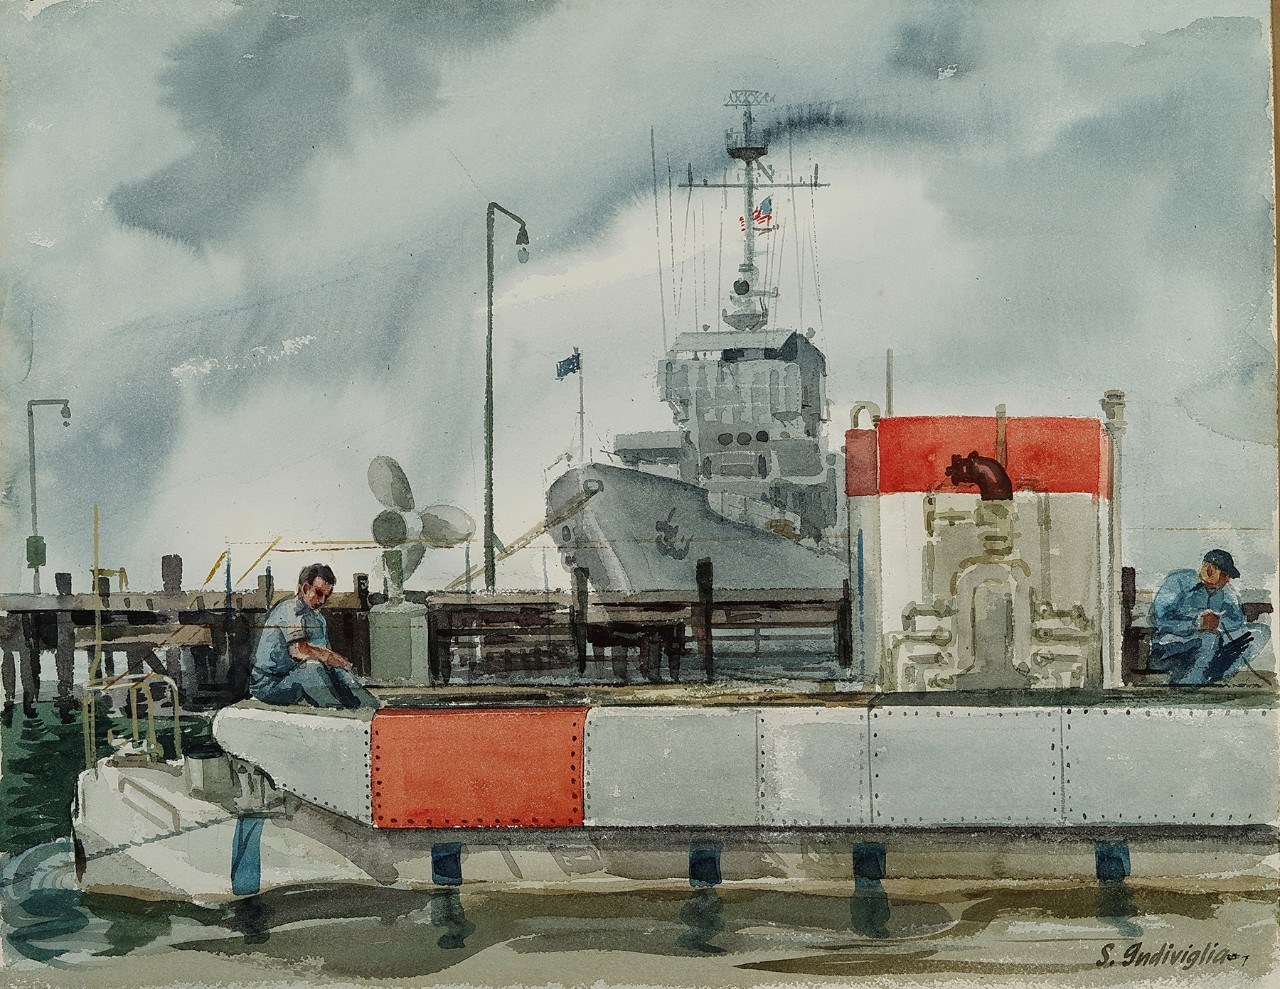 Trieste is tied to a pier with two men working on the deck, behind is another Navy ship